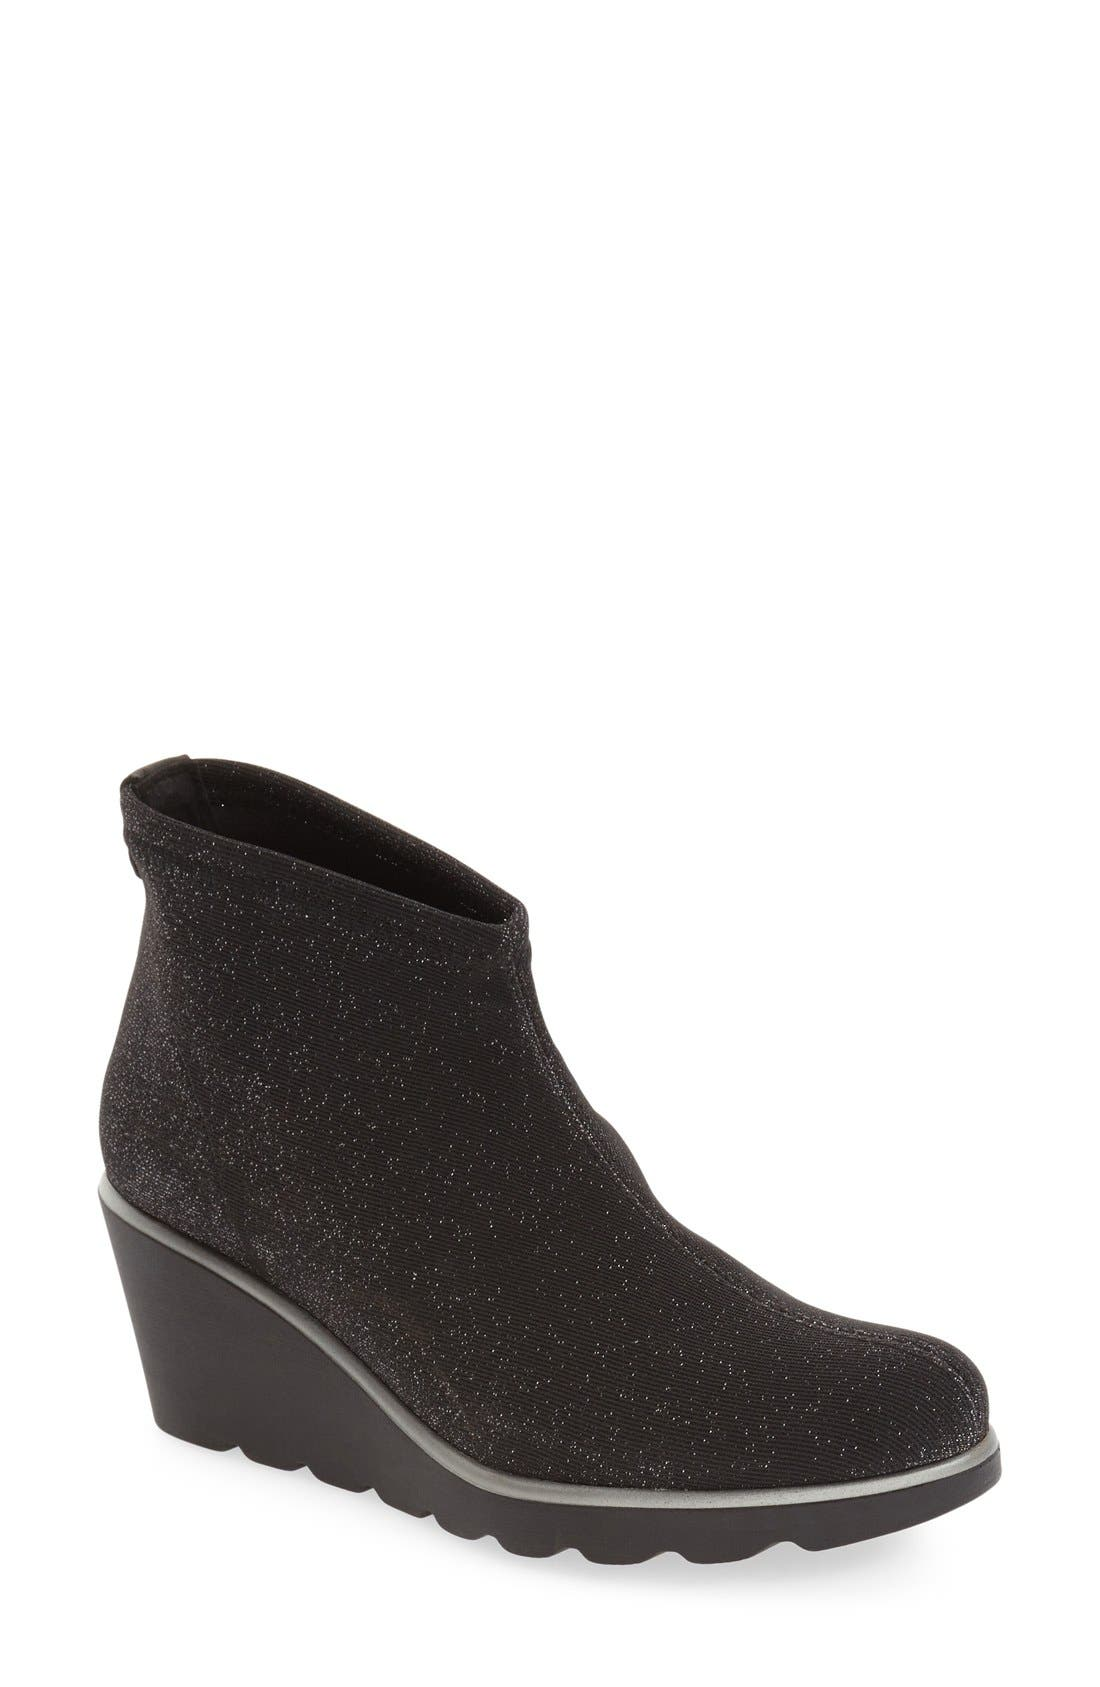 'Baltic' Wedge Bootie,                             Main thumbnail 1, color,                             001